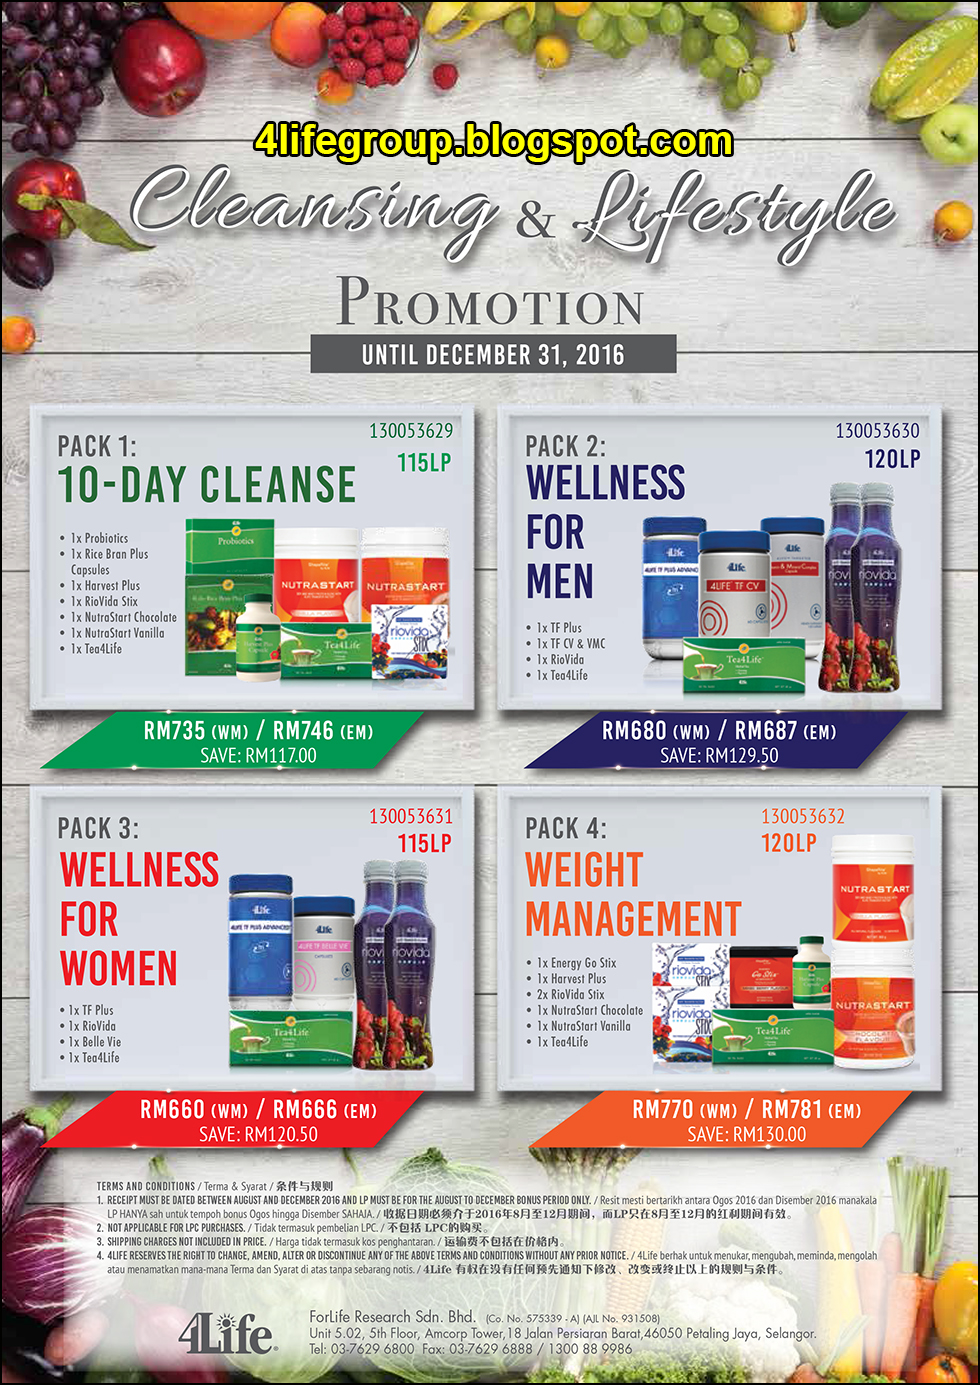 foto Cleansing & Lifestyle Promotion 2016 4Life Malaysia